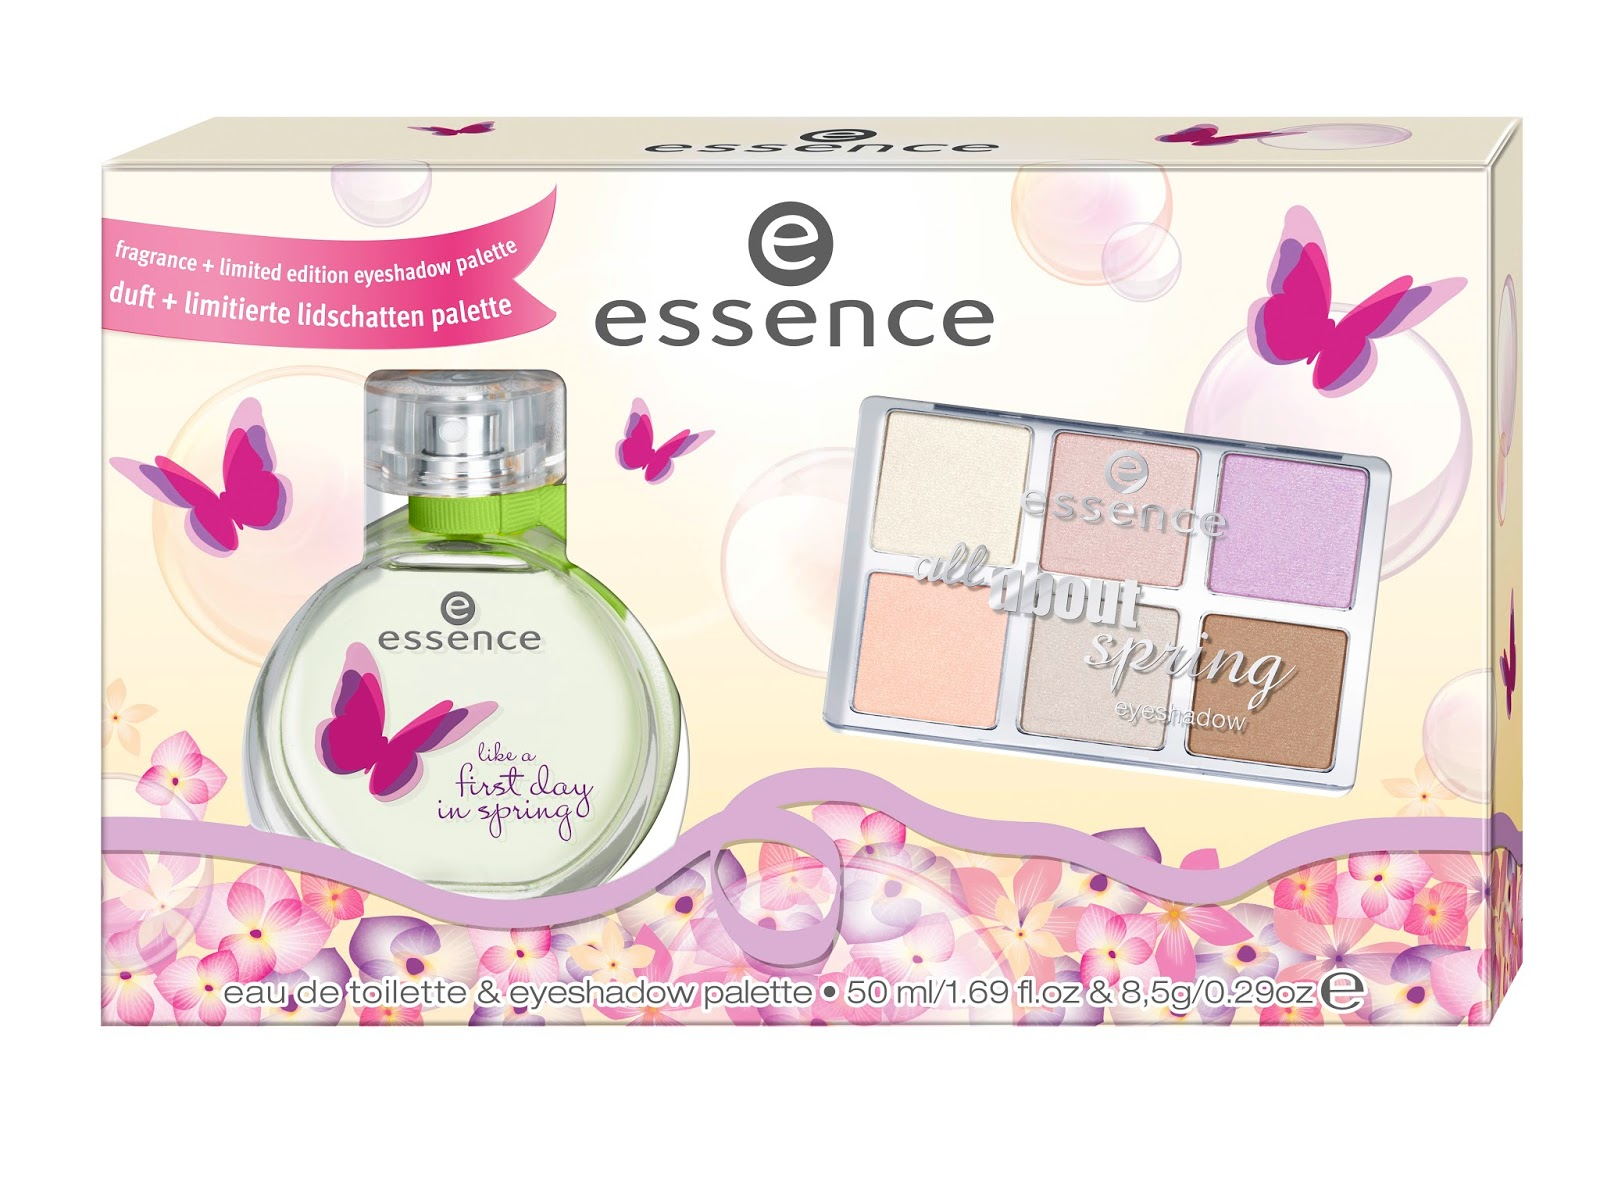 essence spring set – like a first day in spring